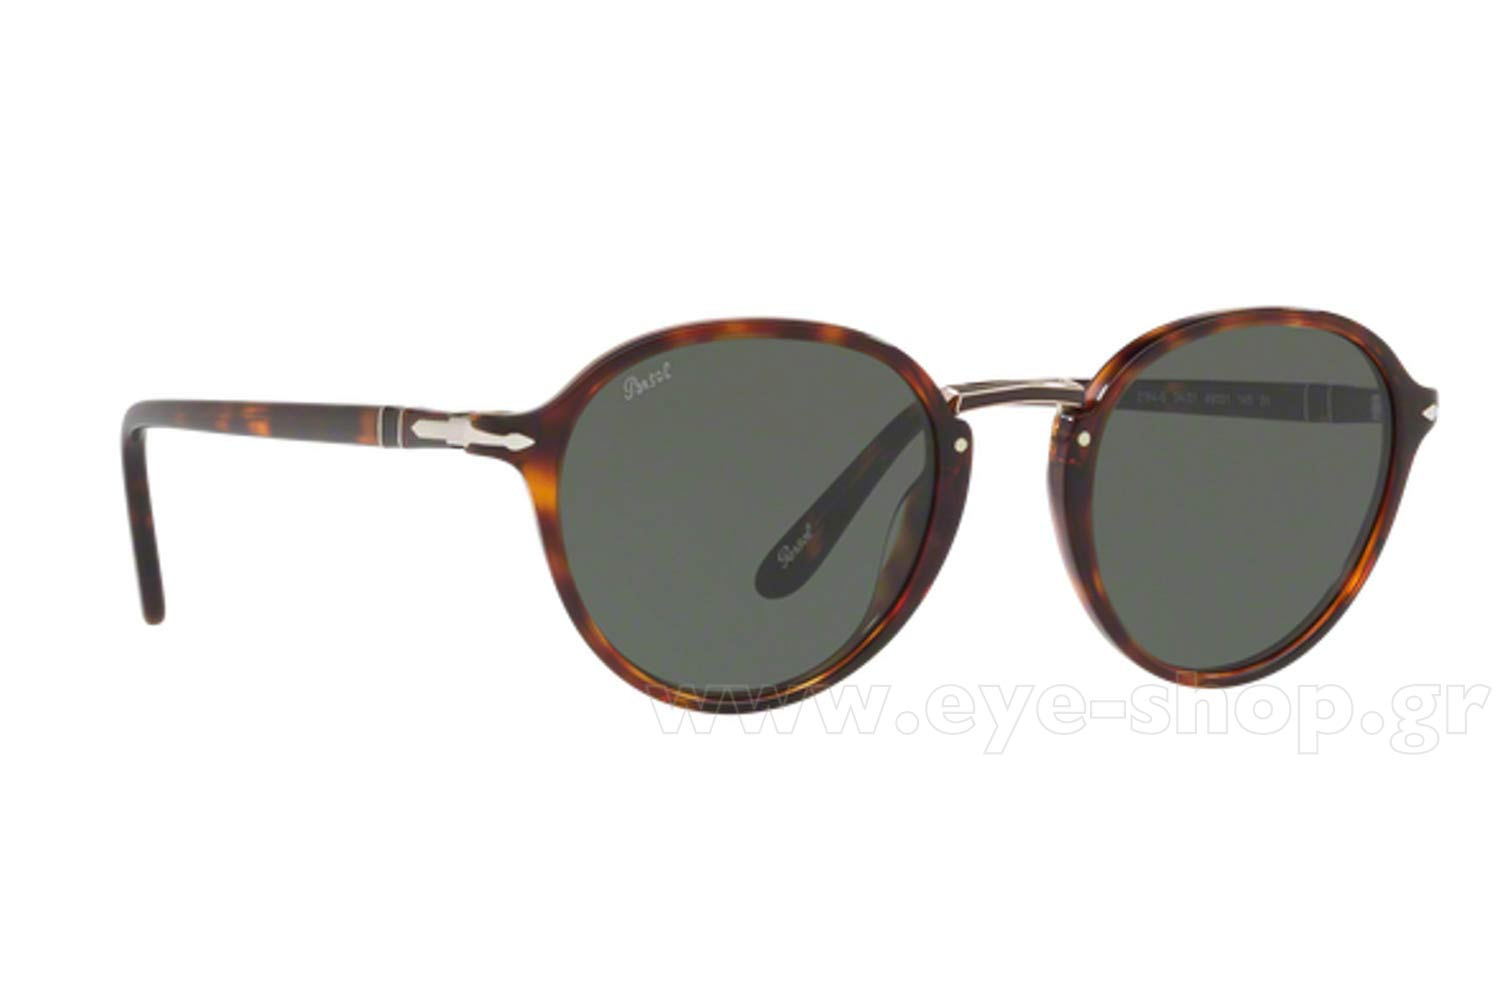 6cecfb6b55 PERSOL 3184S 24 31 51